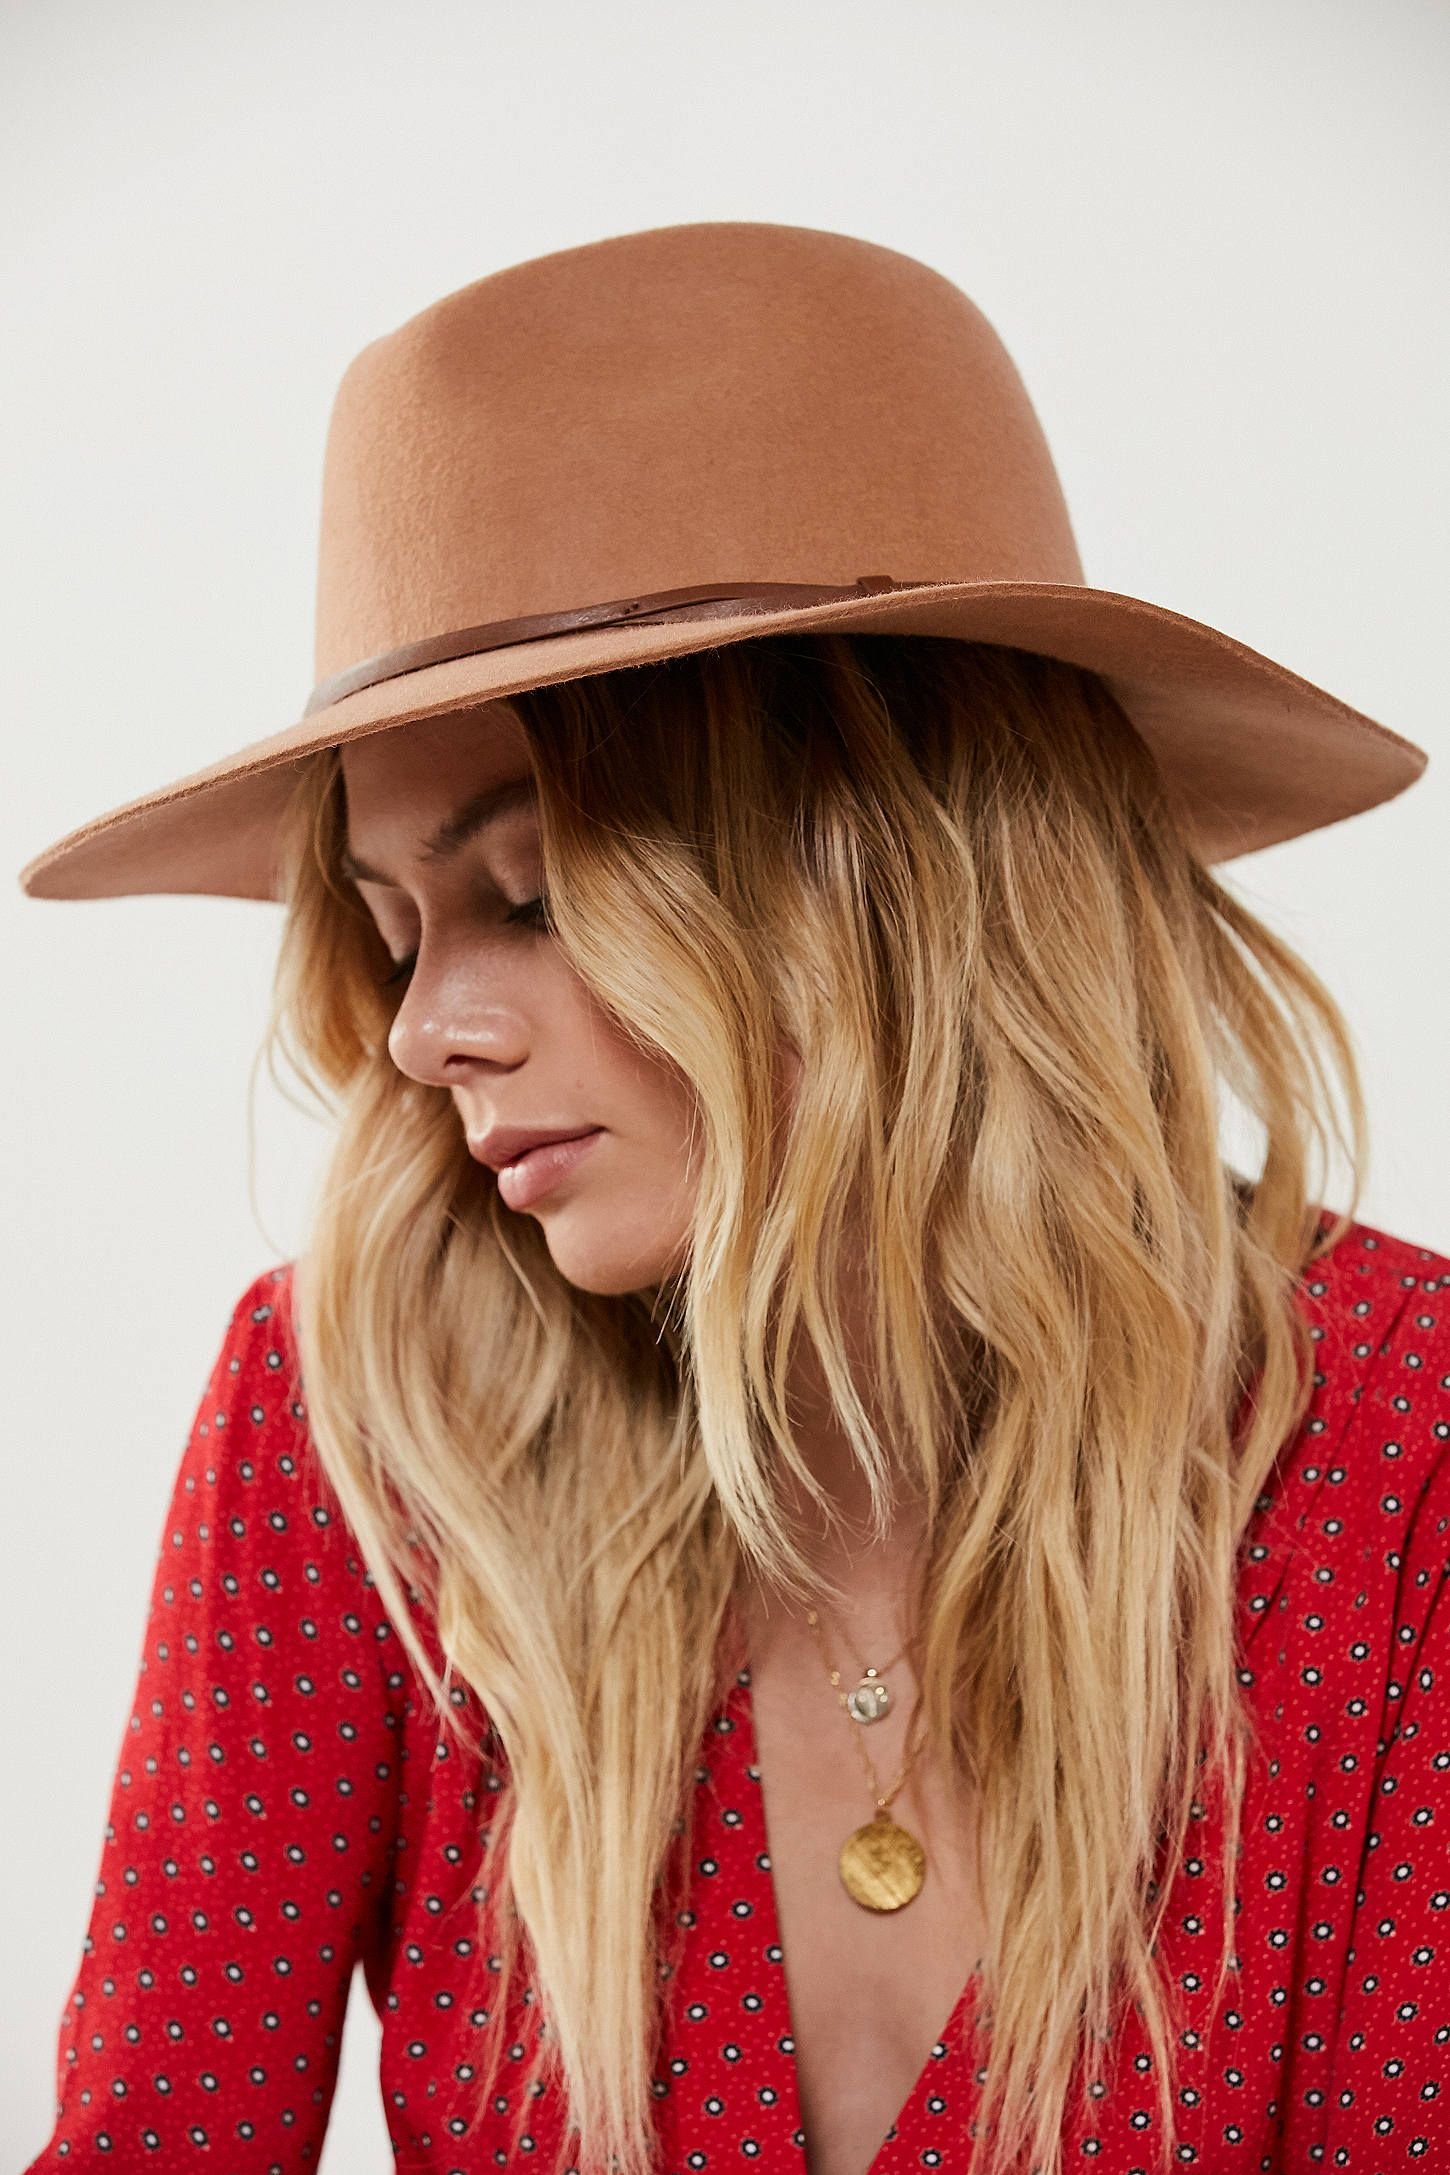 31ee184698e6d Shop Anna Felt Panama Hat at Urban Outfitters today. We carry all the  latest styles